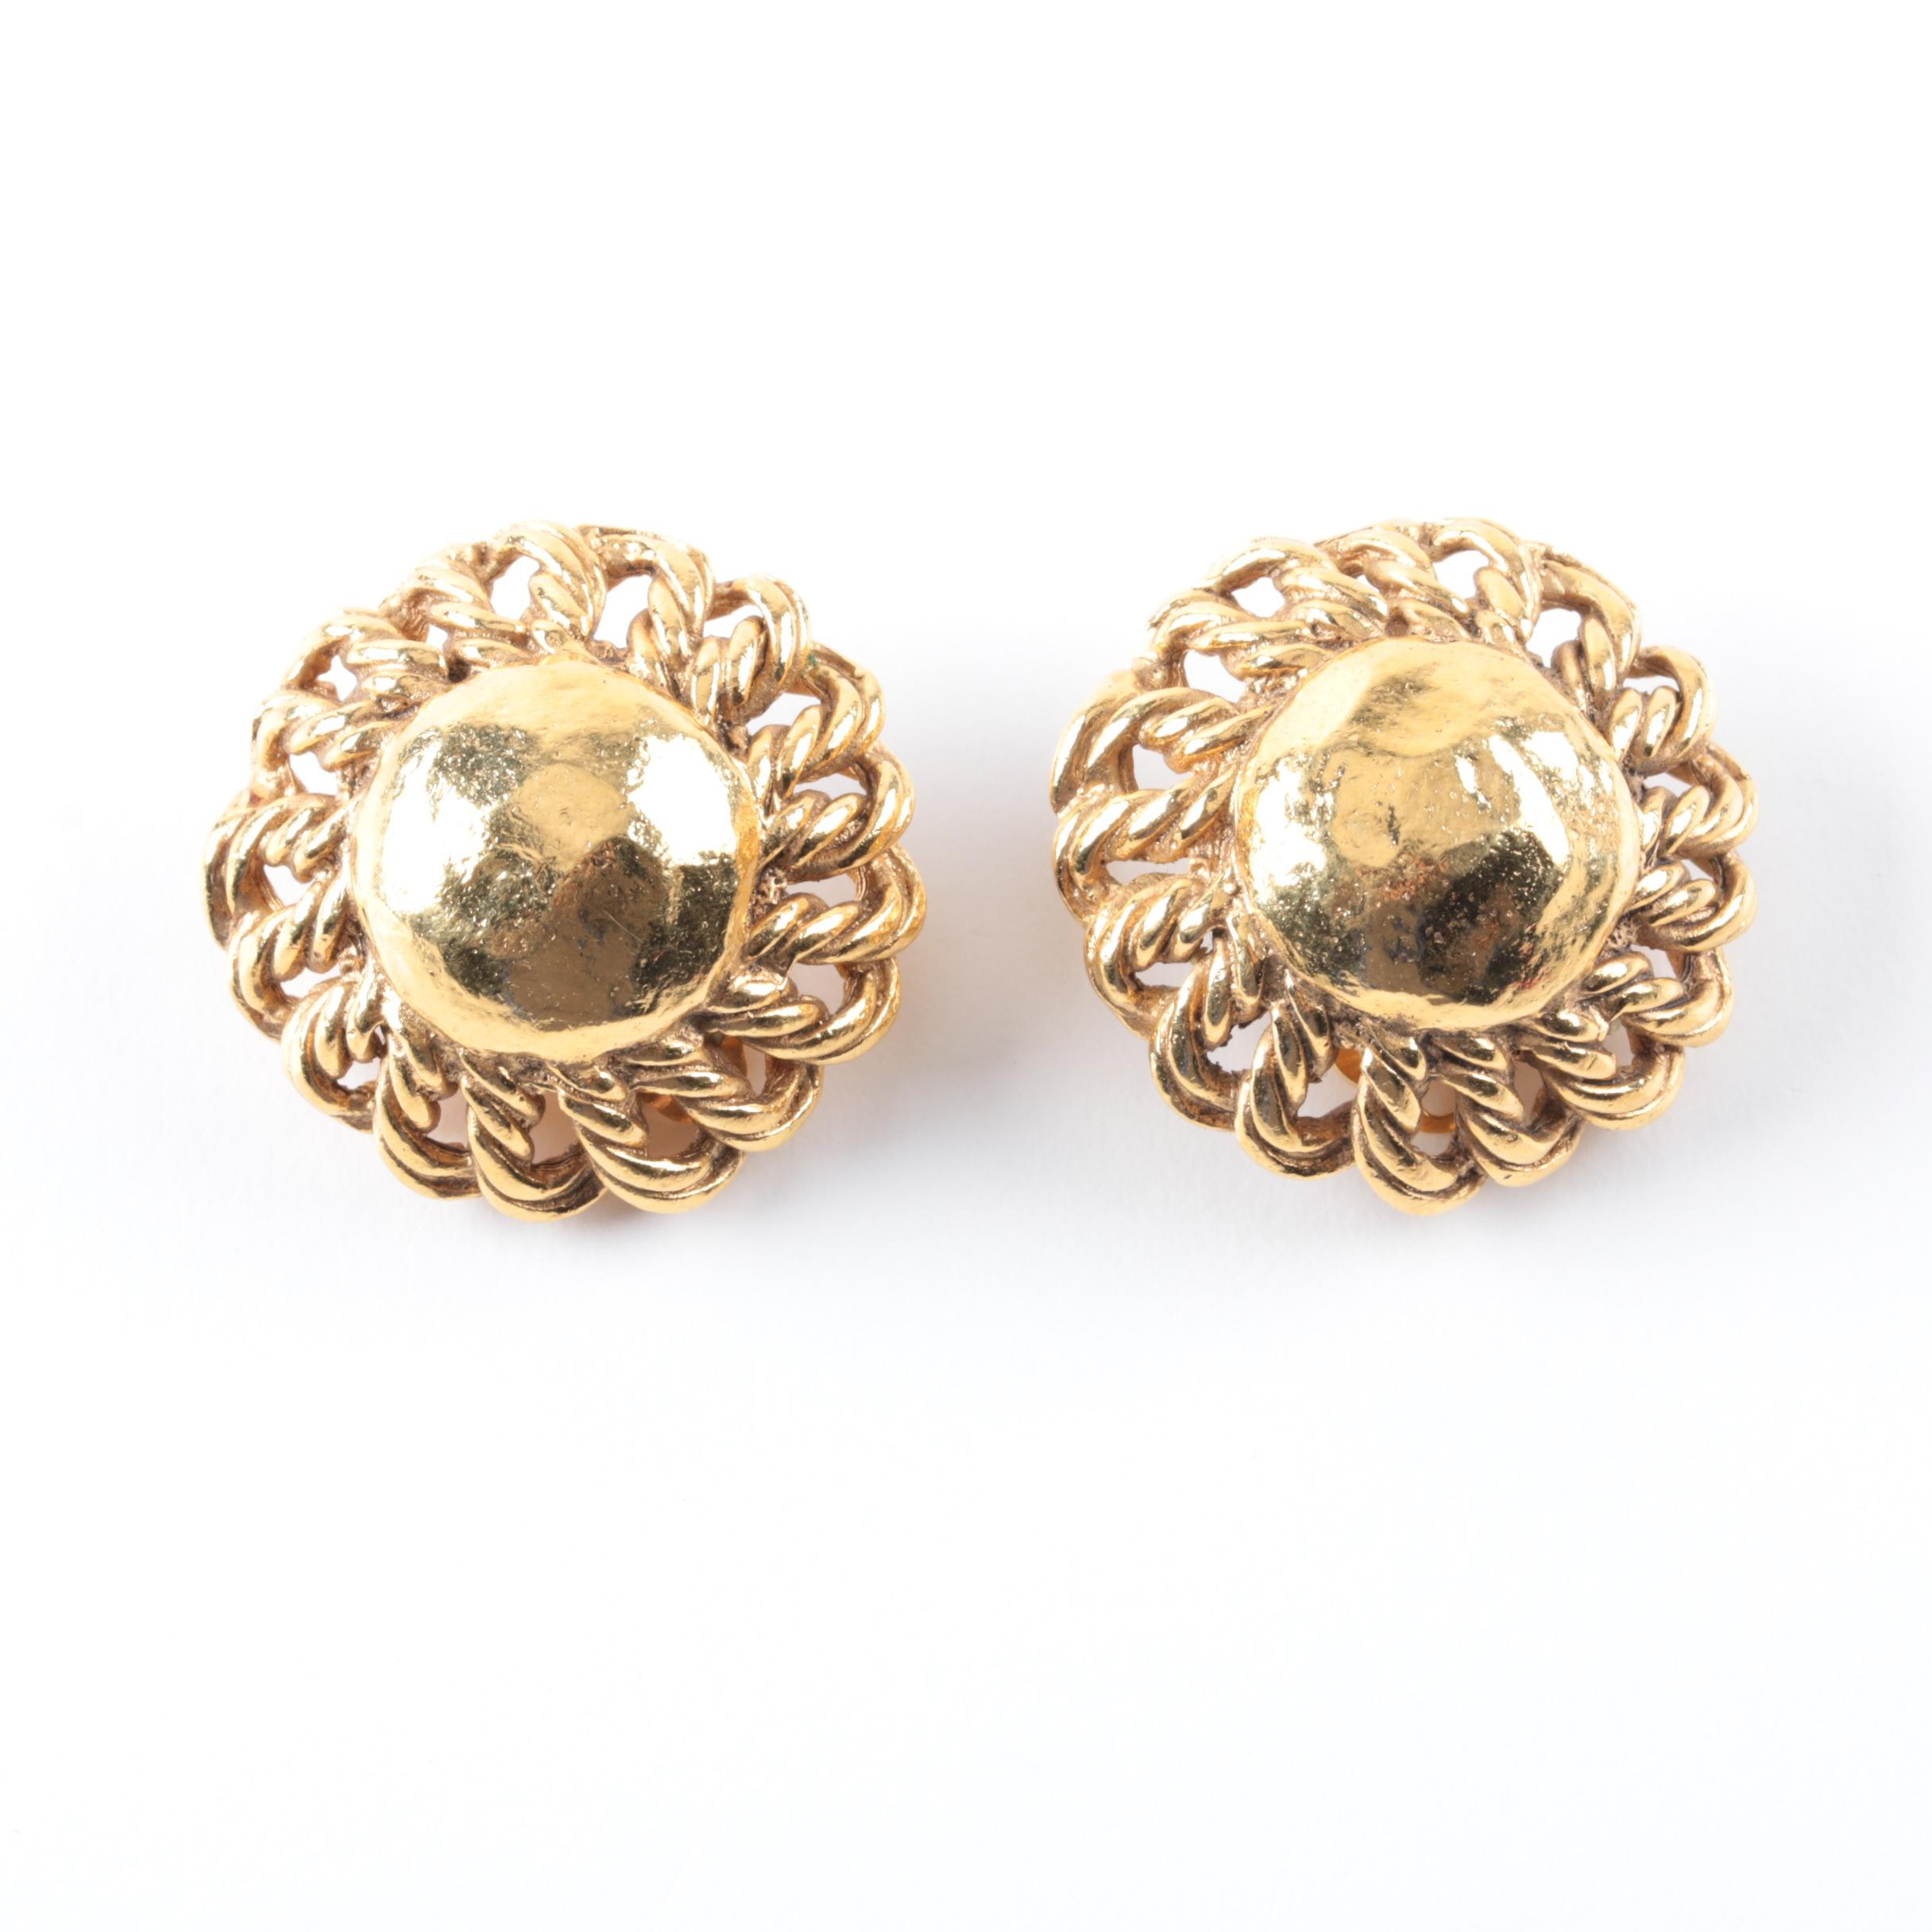 Vintage Gold-Toned Chanel Clip-On Earrings